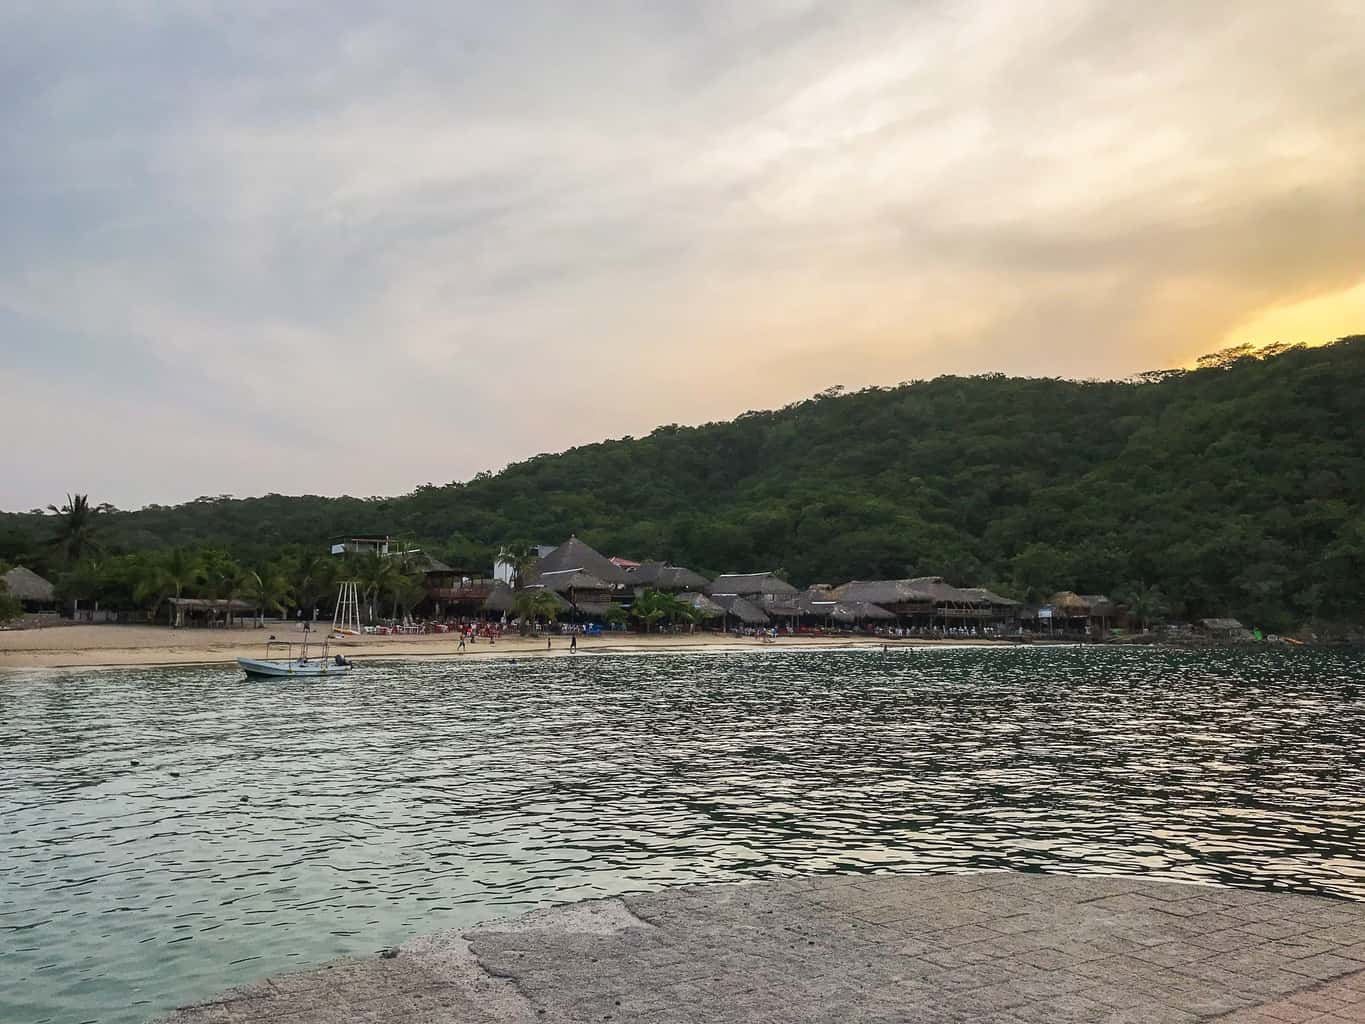 the sunset over playa arrocito in Huatulco